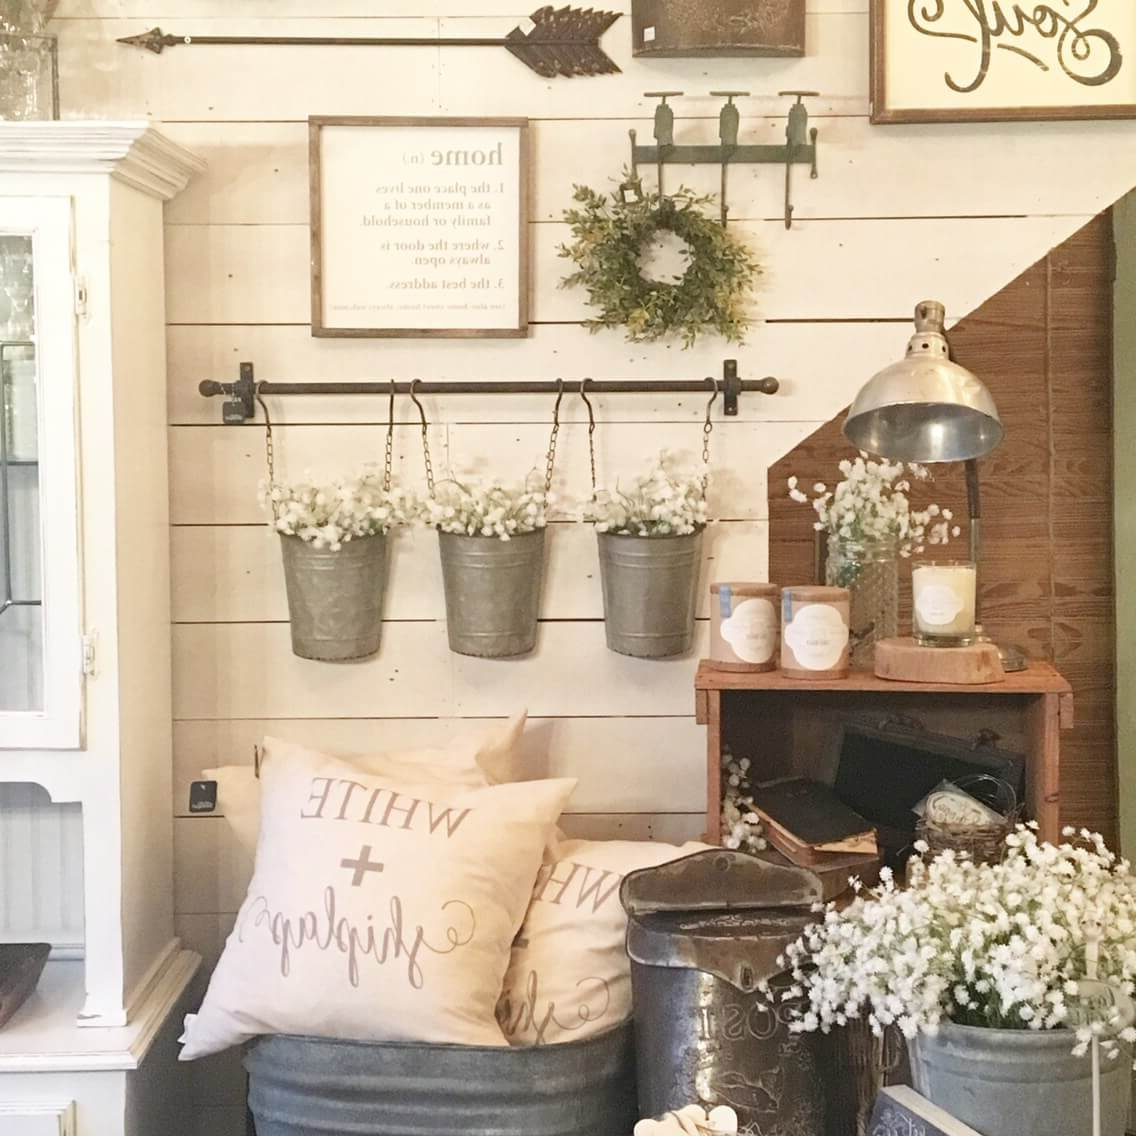 2020 Farm Metal Wall Rack And 3 Tin Pot With Hanger Wall Decor Intended For 45+ Best Farmhouse Wall Decor Ideas And Designs For 2019 (Gallery 9 of 20)